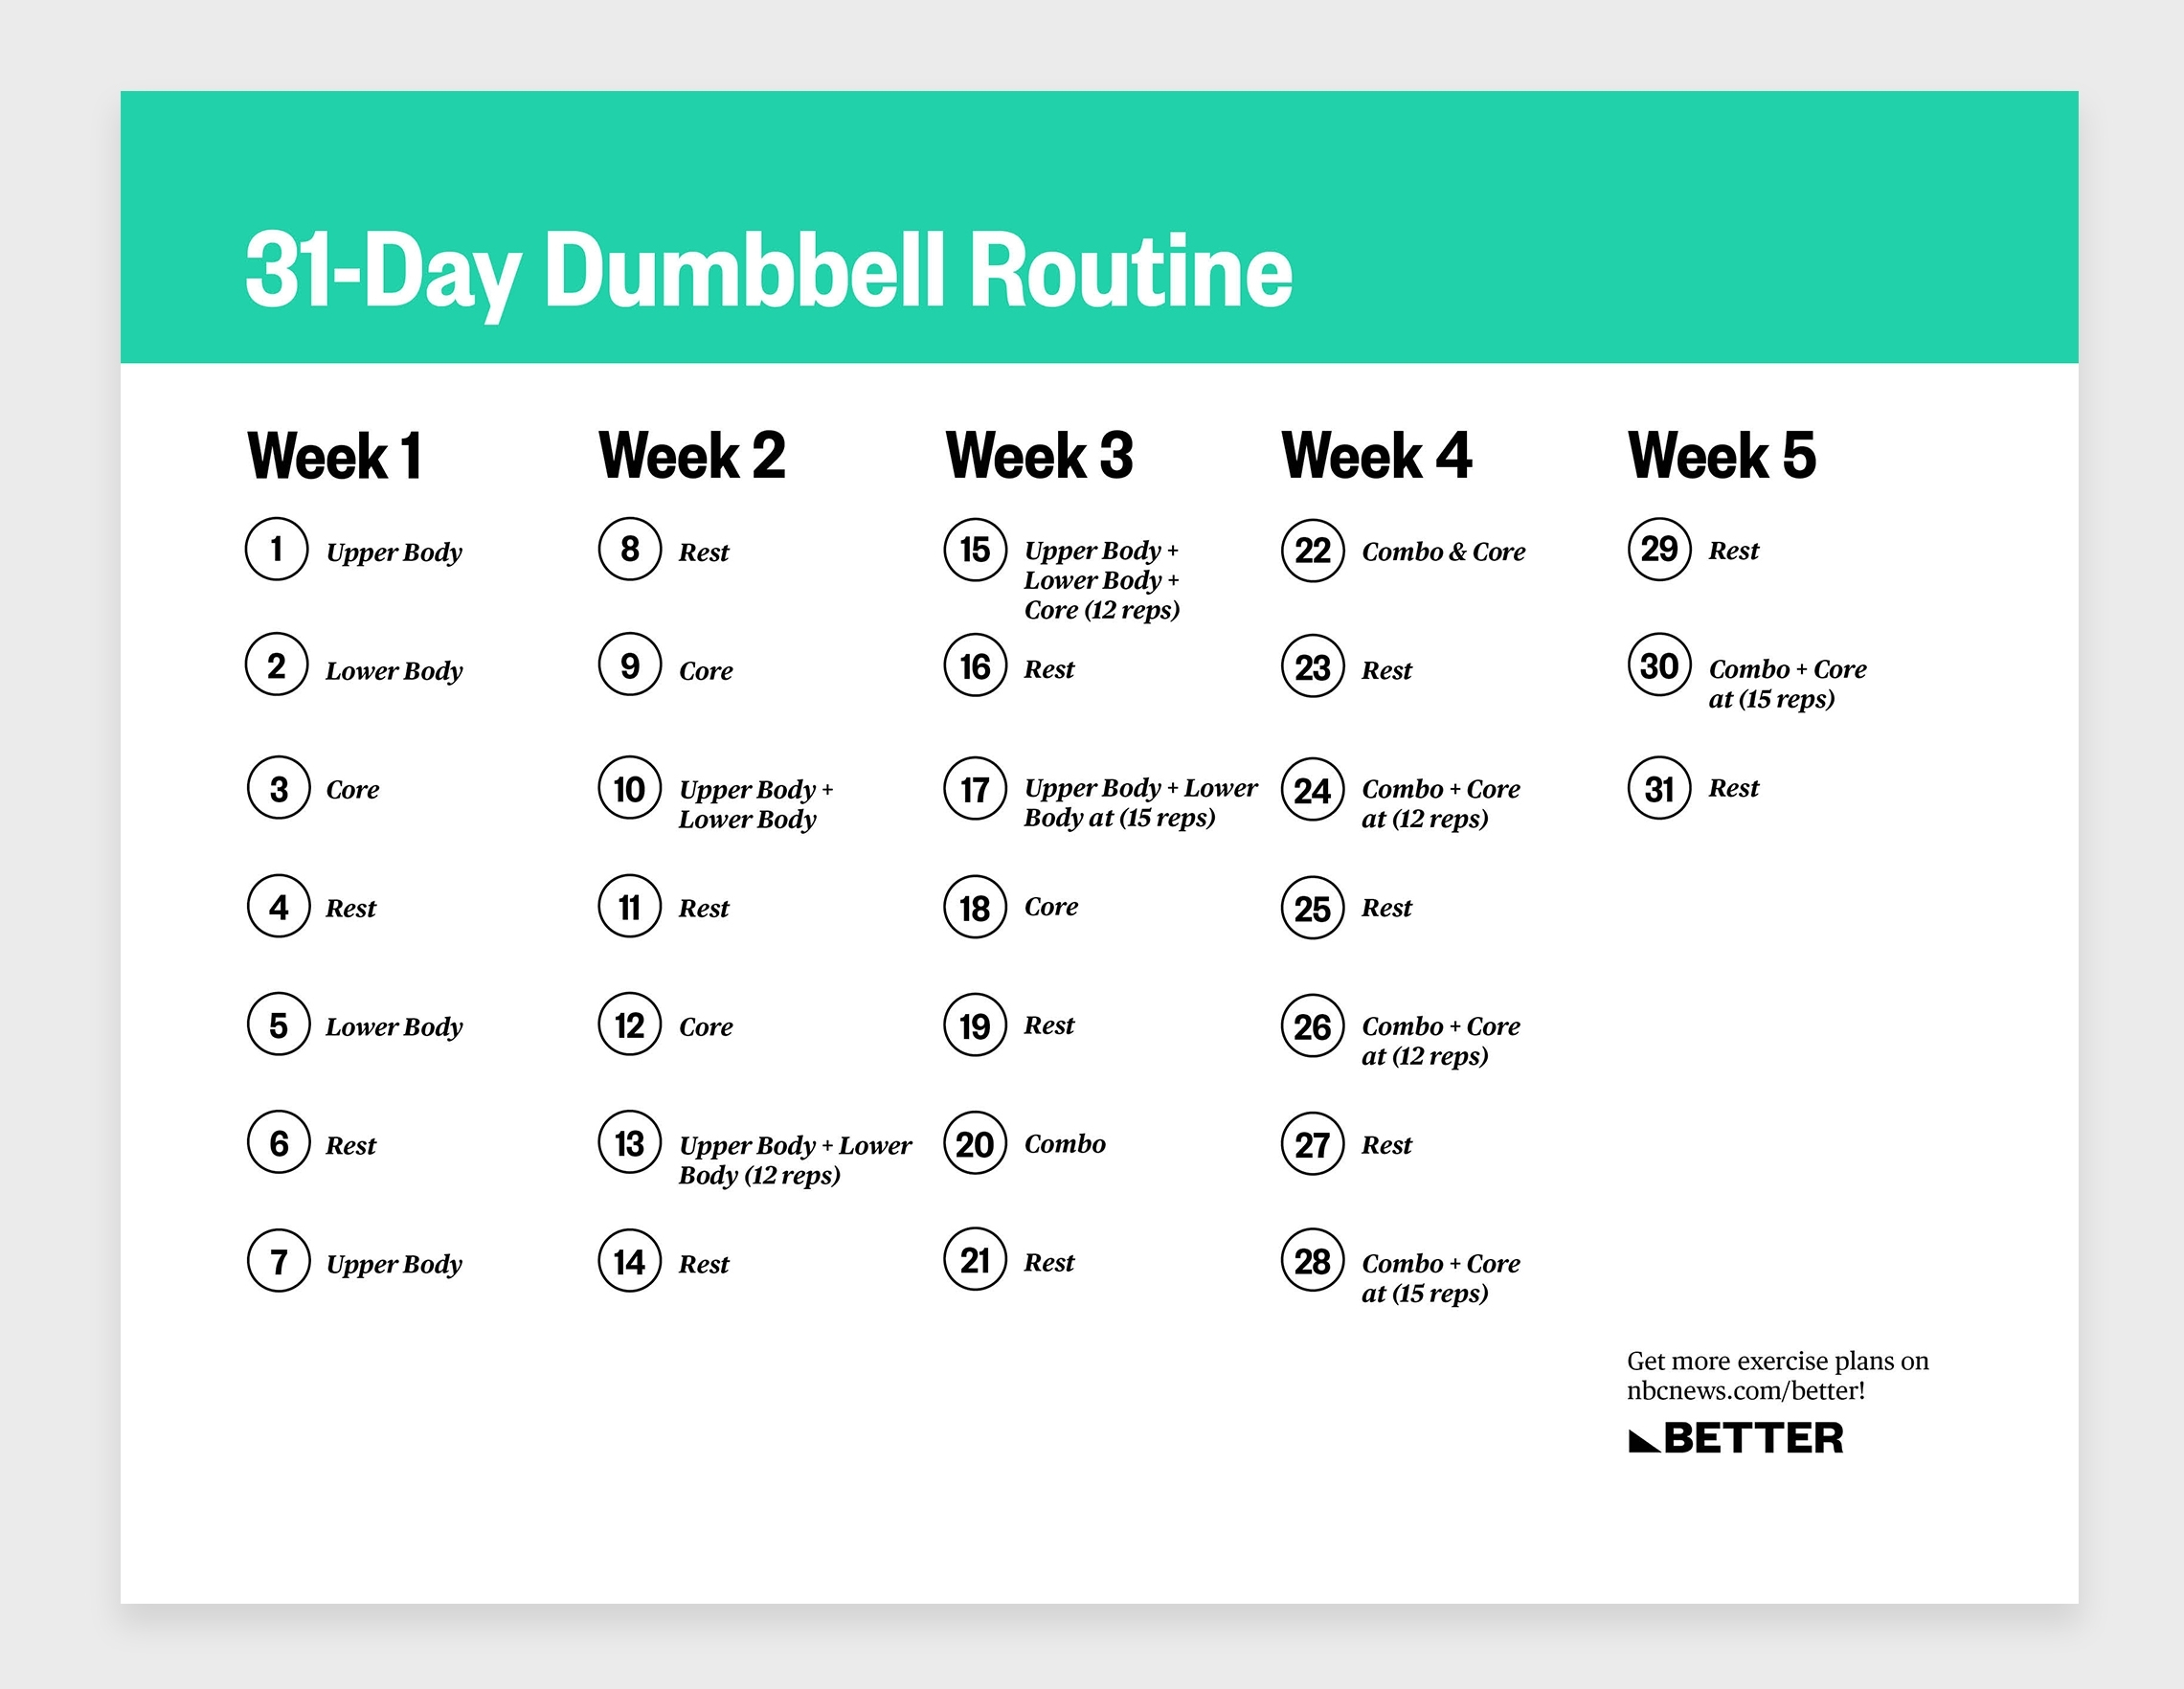 15-Minute Workouts: This 31-Day Dumbbell Routine Will Tone